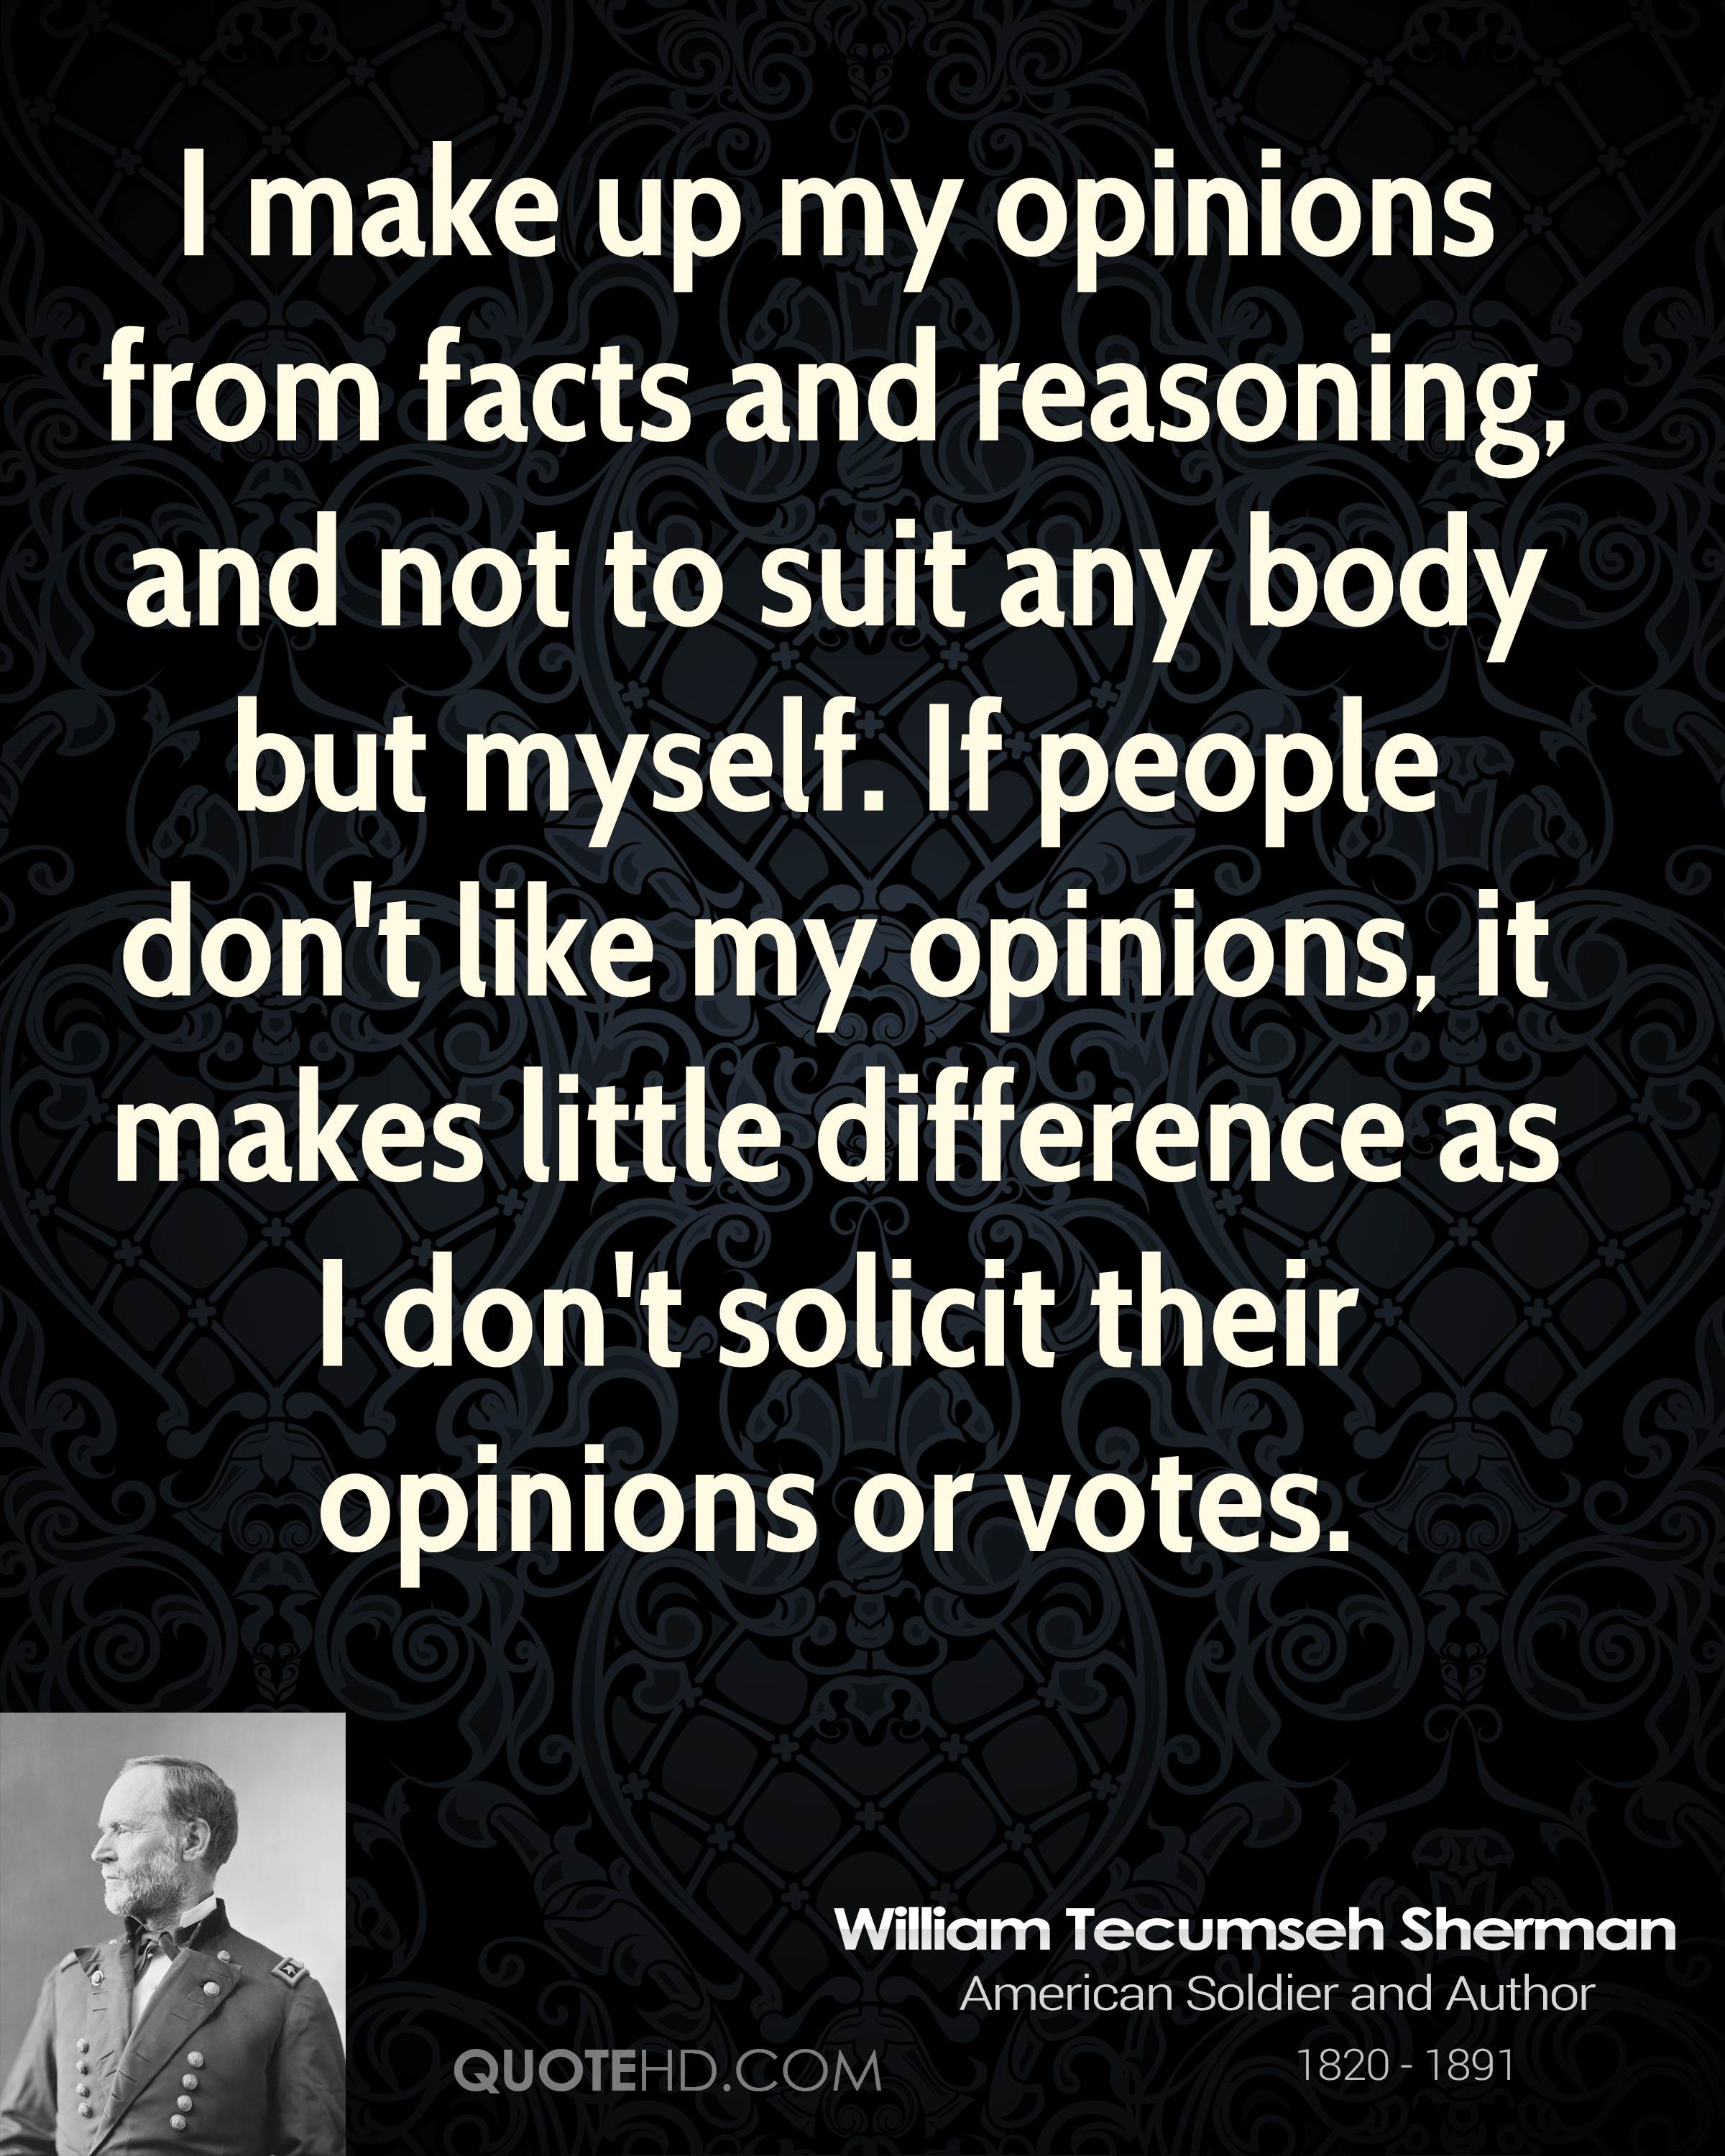 I make up my opinions from facts and reasoning, and not to suit any body but myself. If people don't like my opinions, it makes little difference as I don't solicit their opinions or votes.